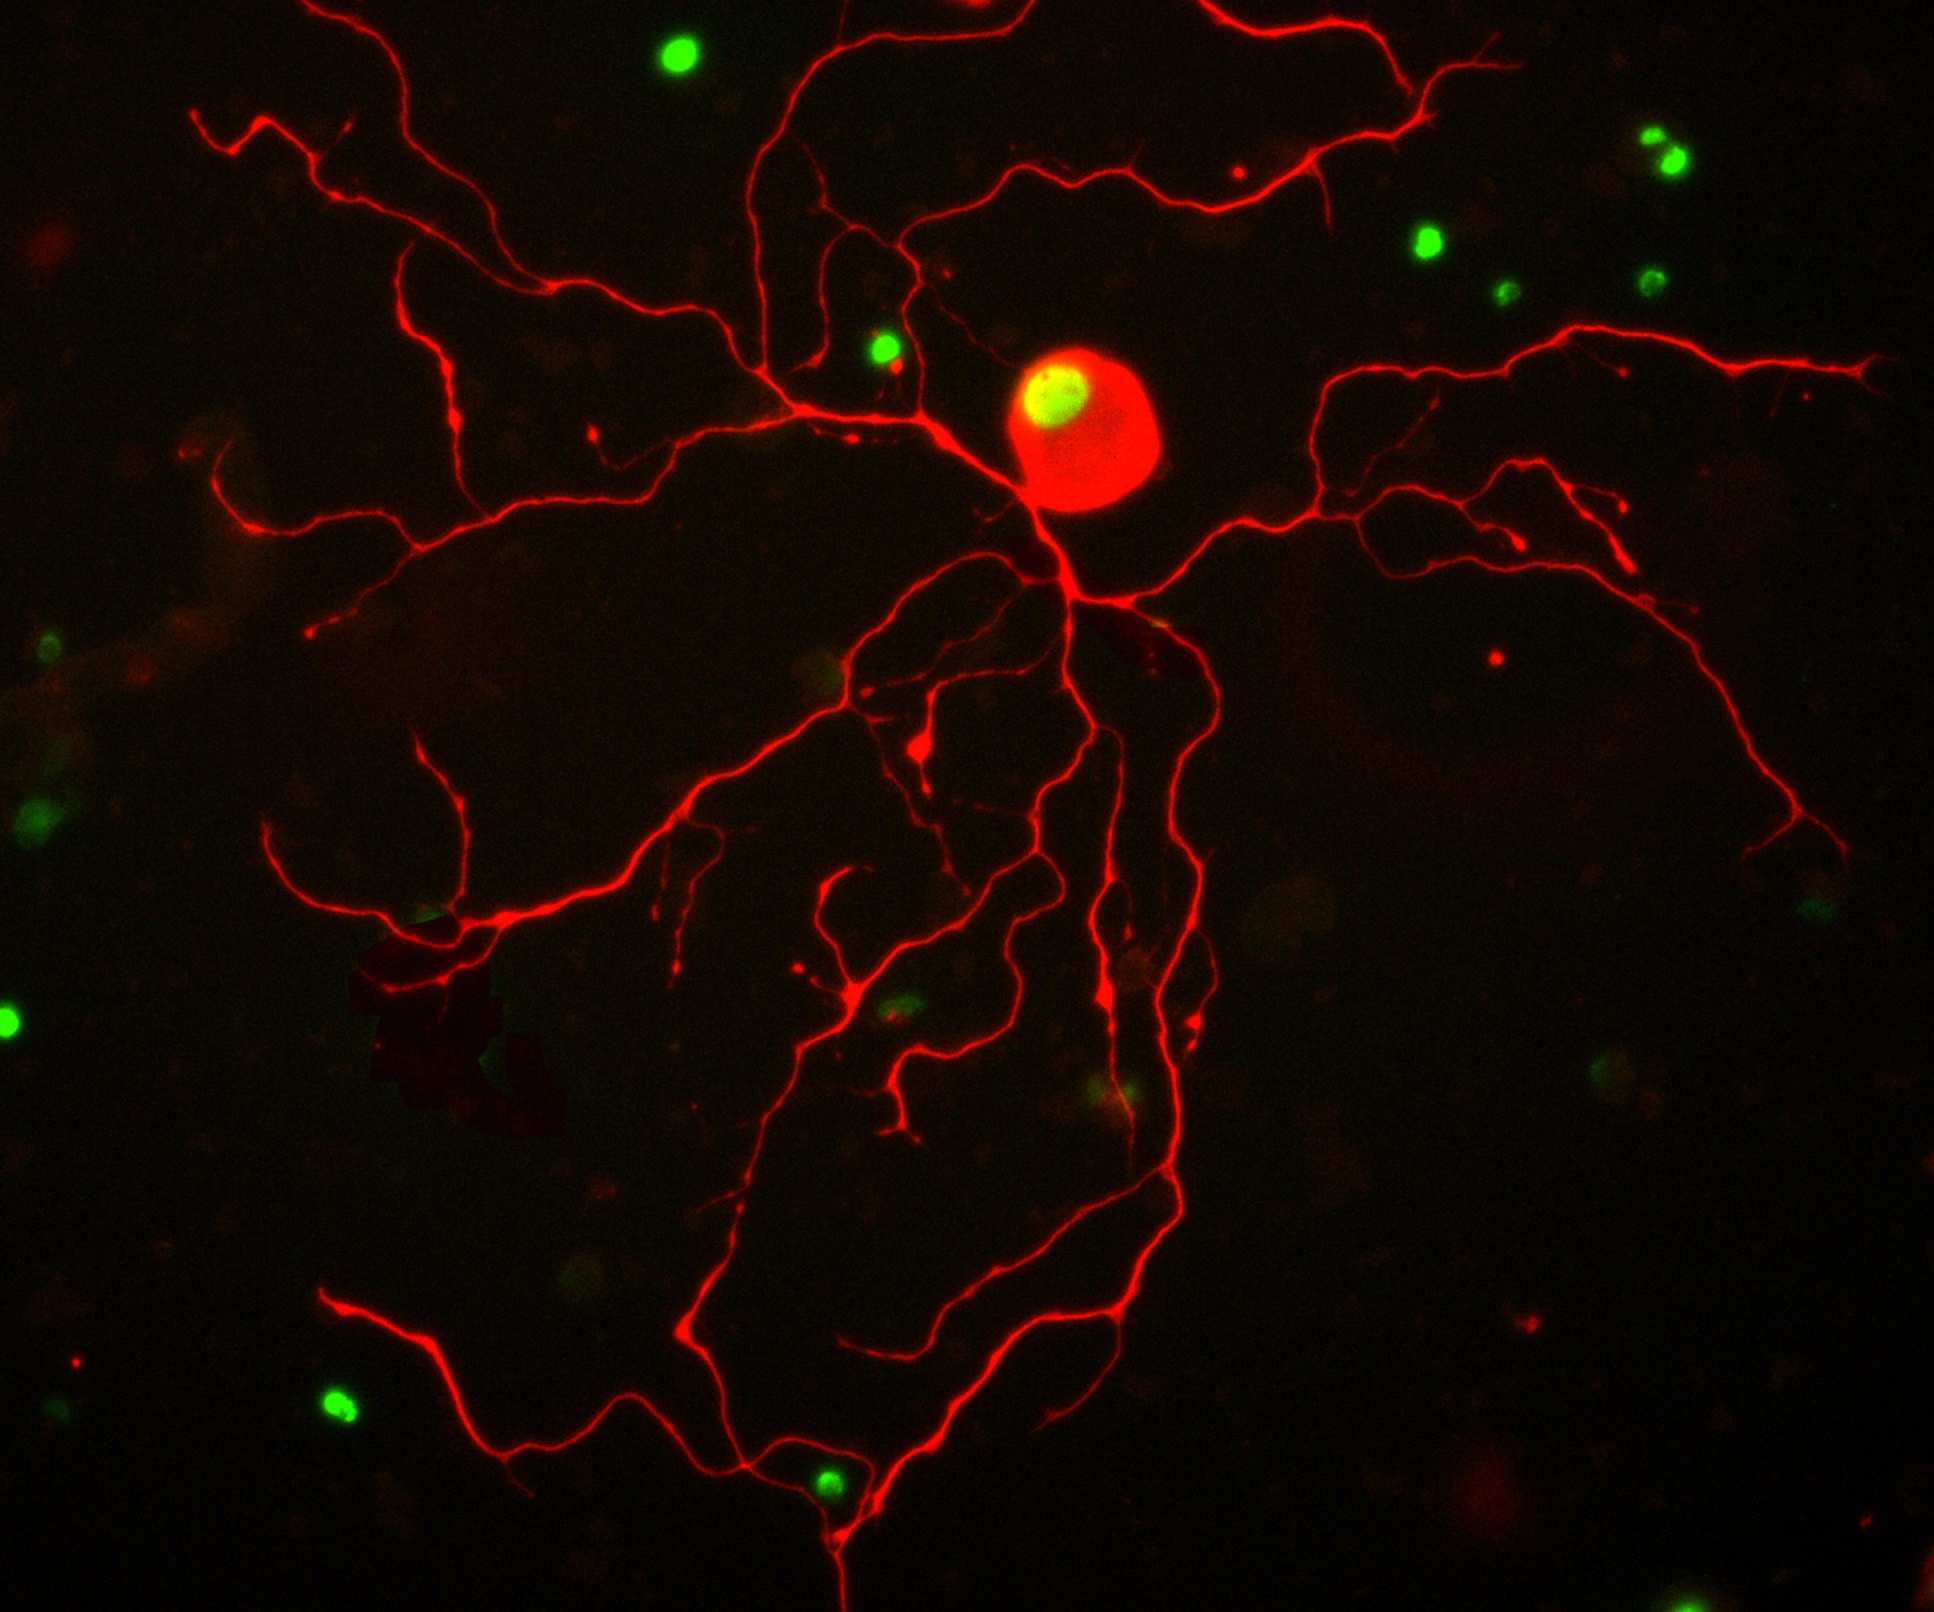 Image of a nerve cell branching out, stained with fluorescent markers